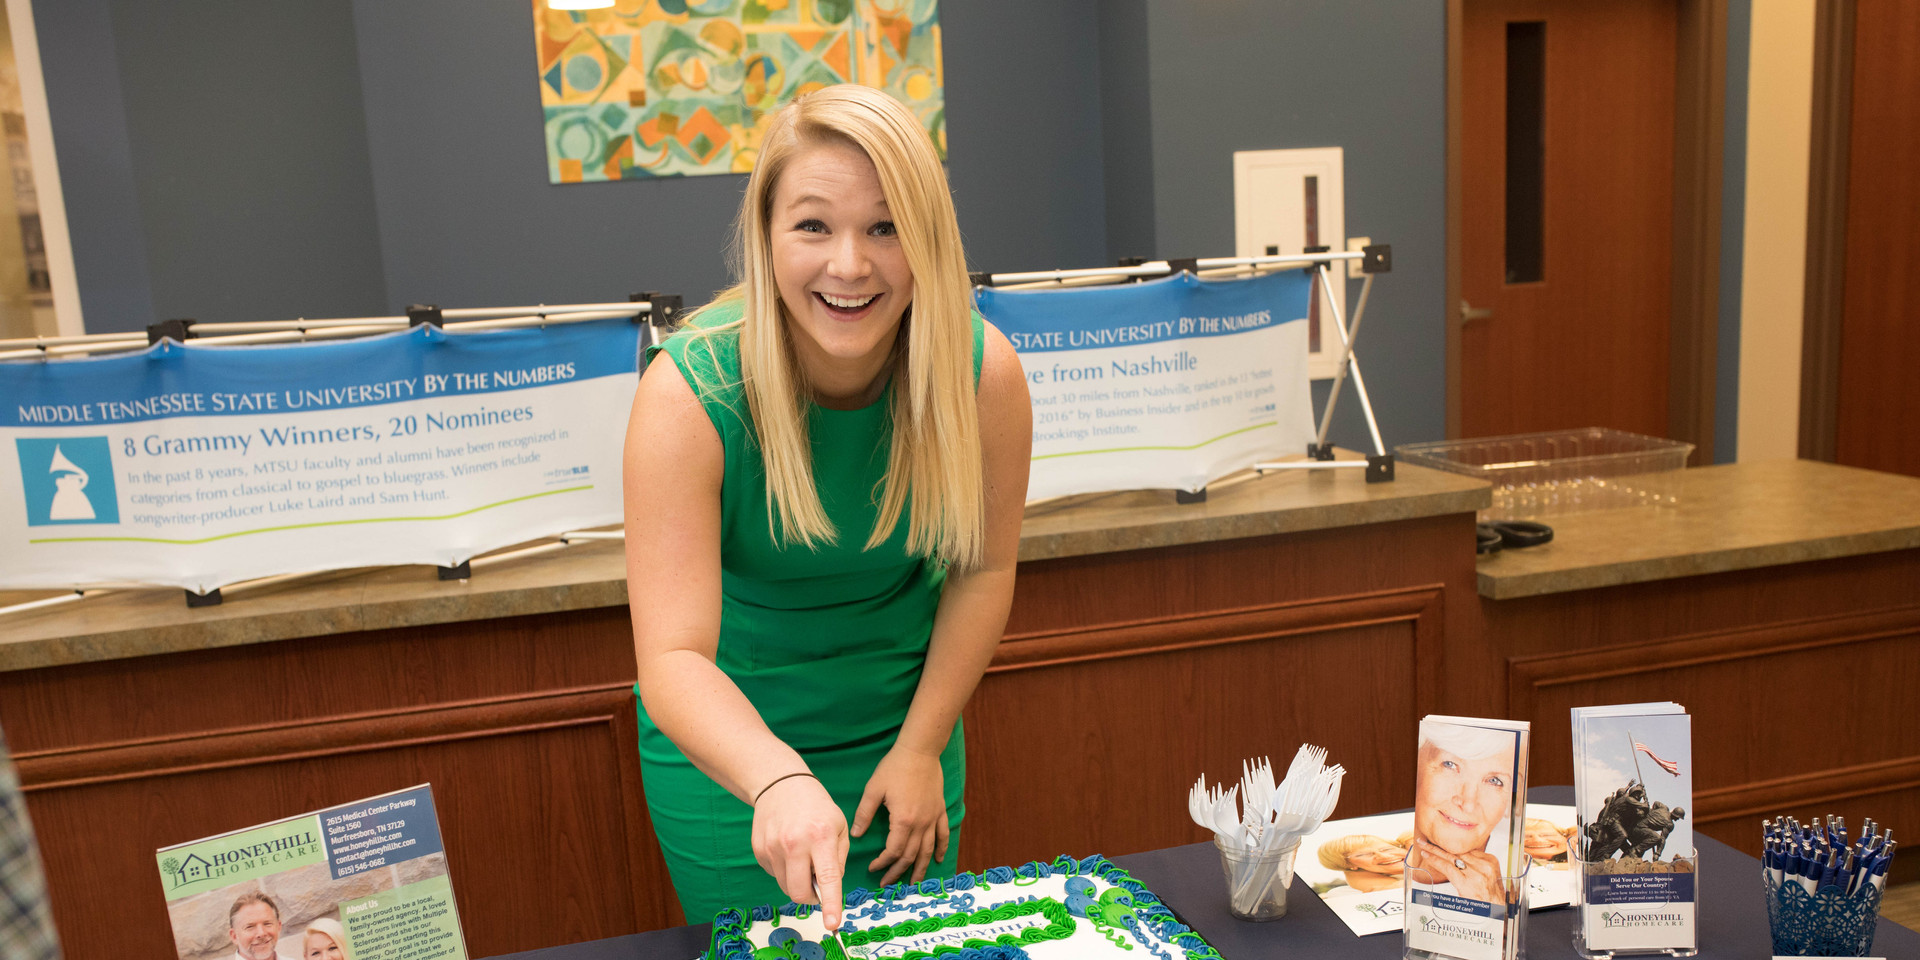 Happy to be cutting the cake!